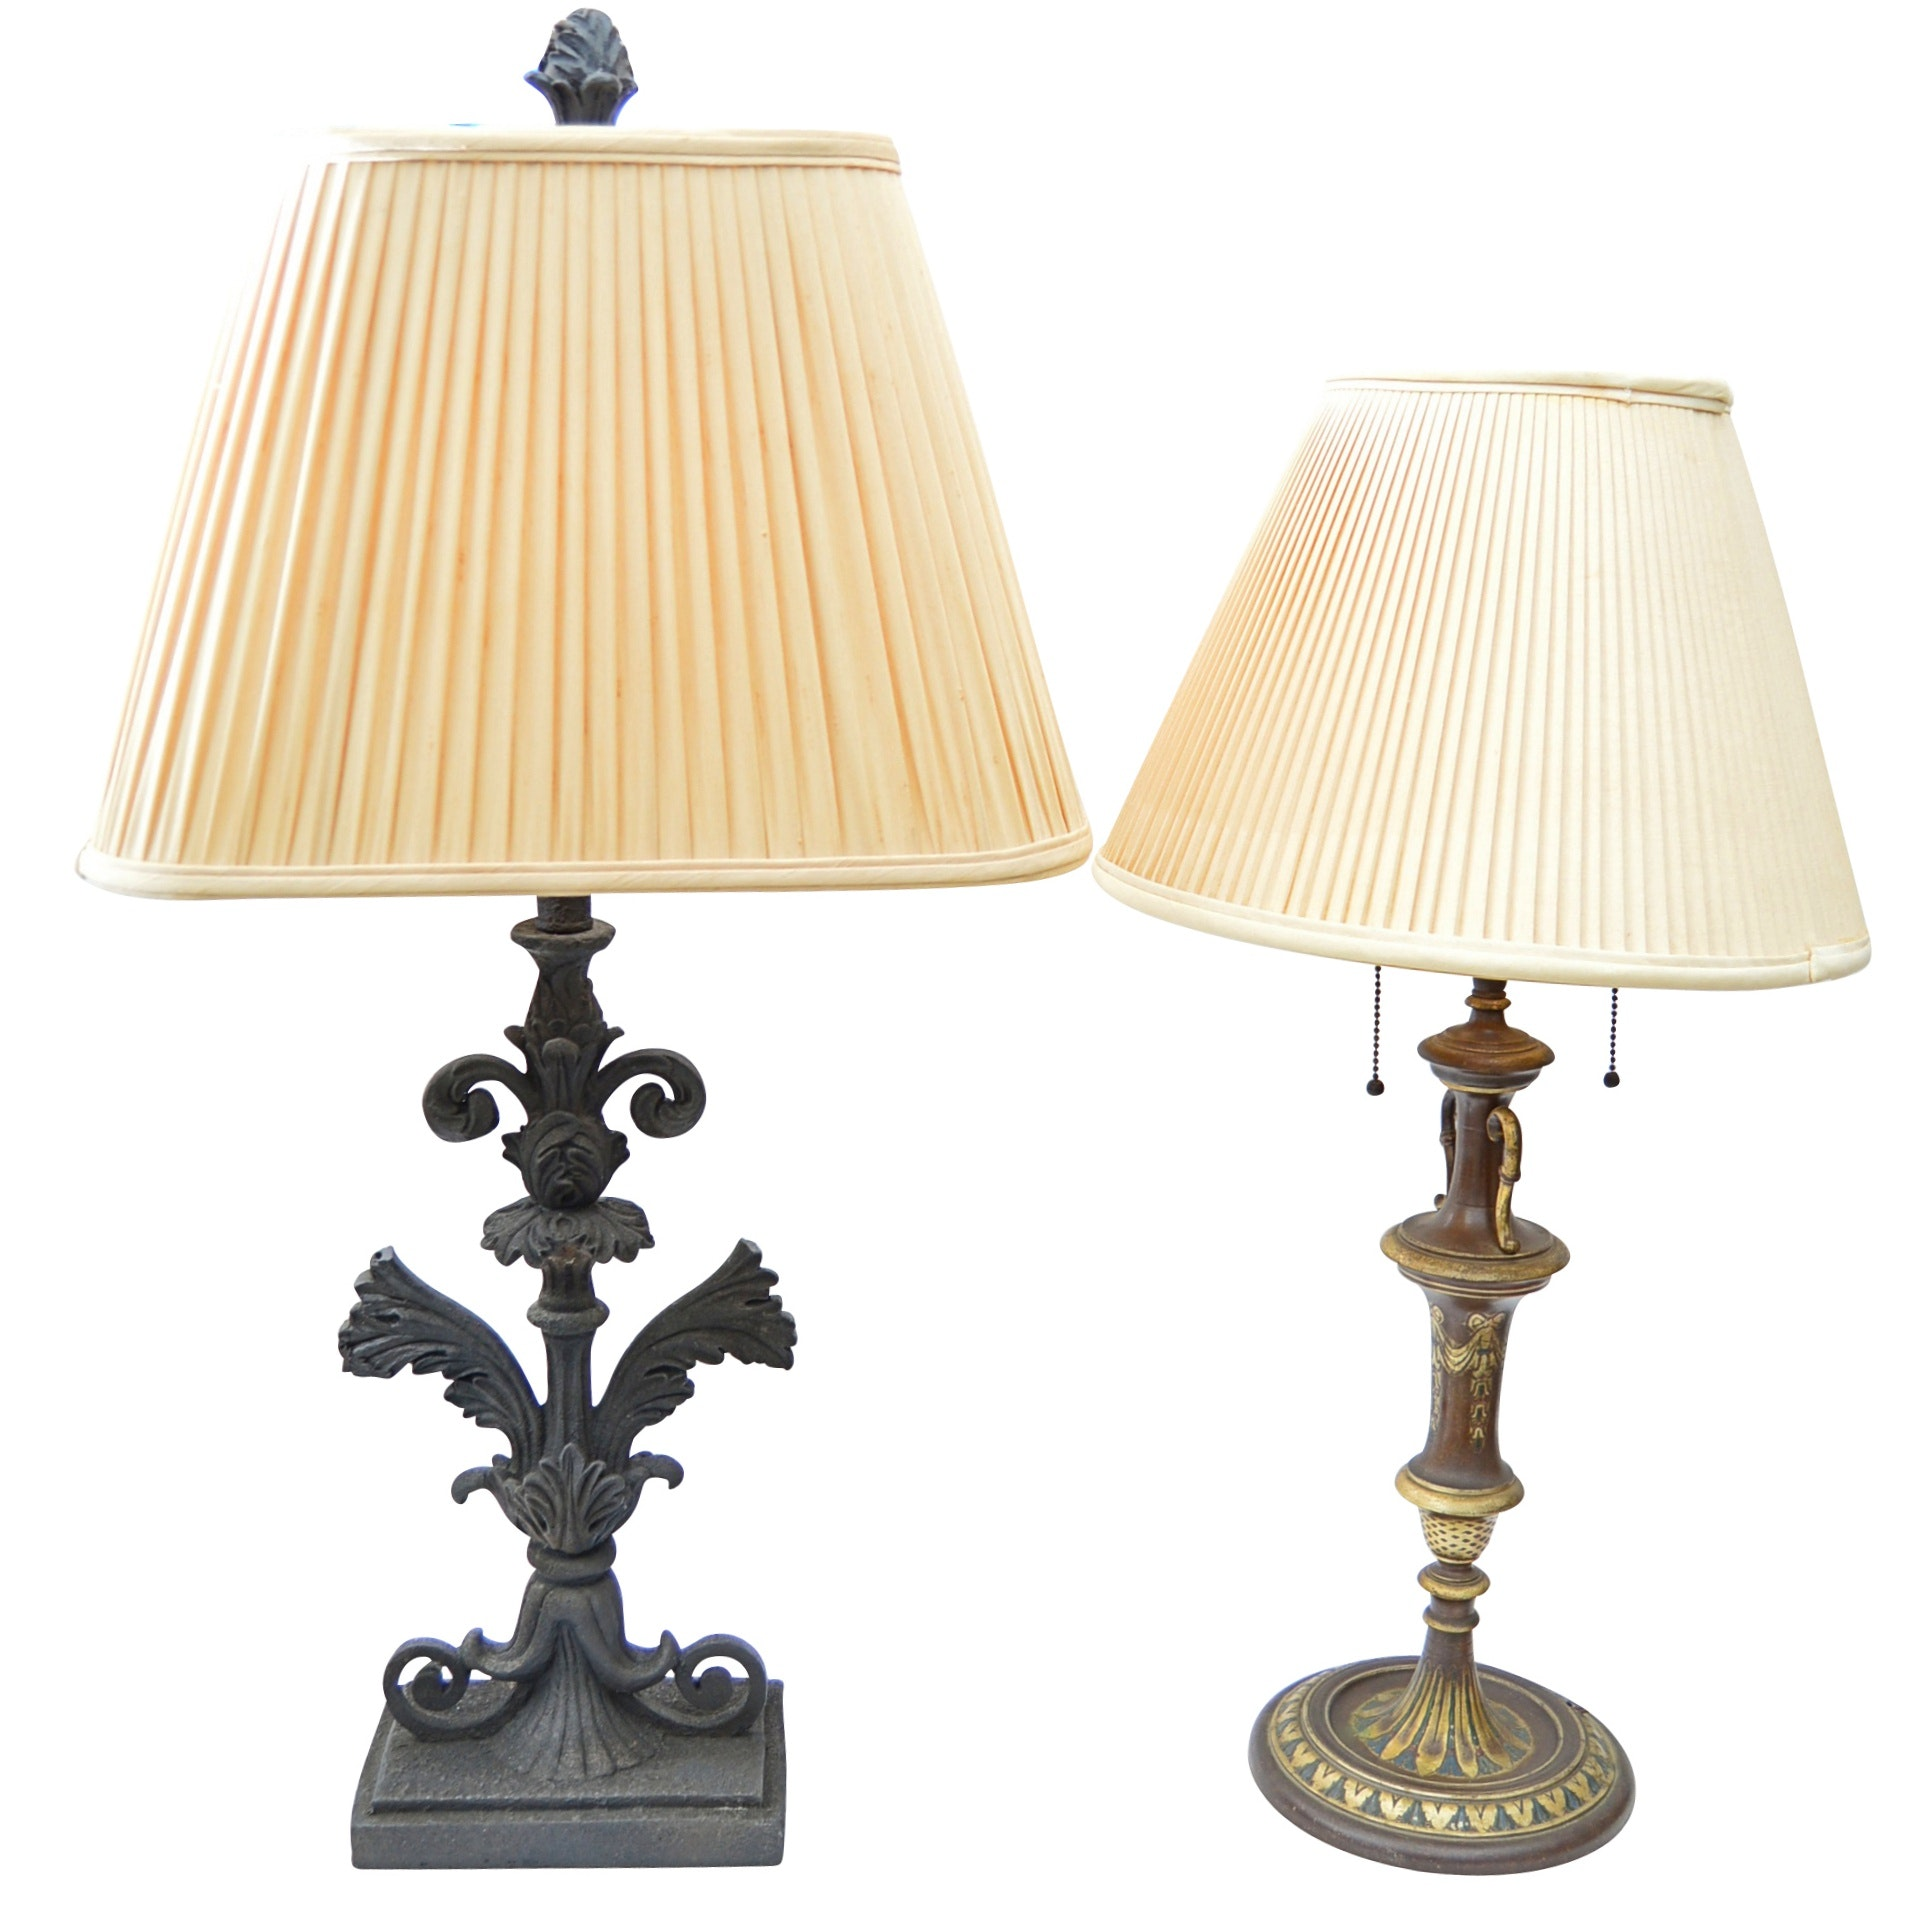 Neoclassical Style Table Lamps, Mid and Late 20th Century